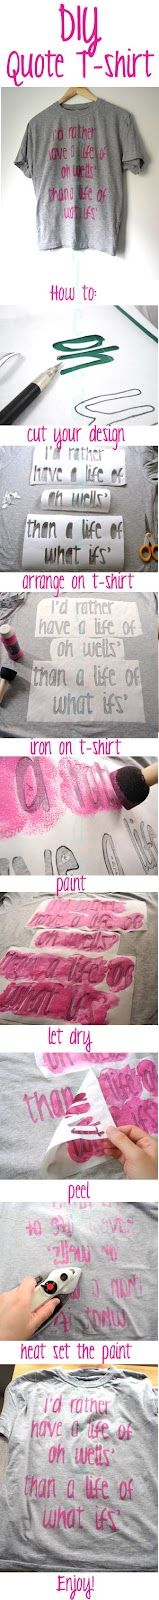 DIY Words on T-Shirt. Easy peasy.